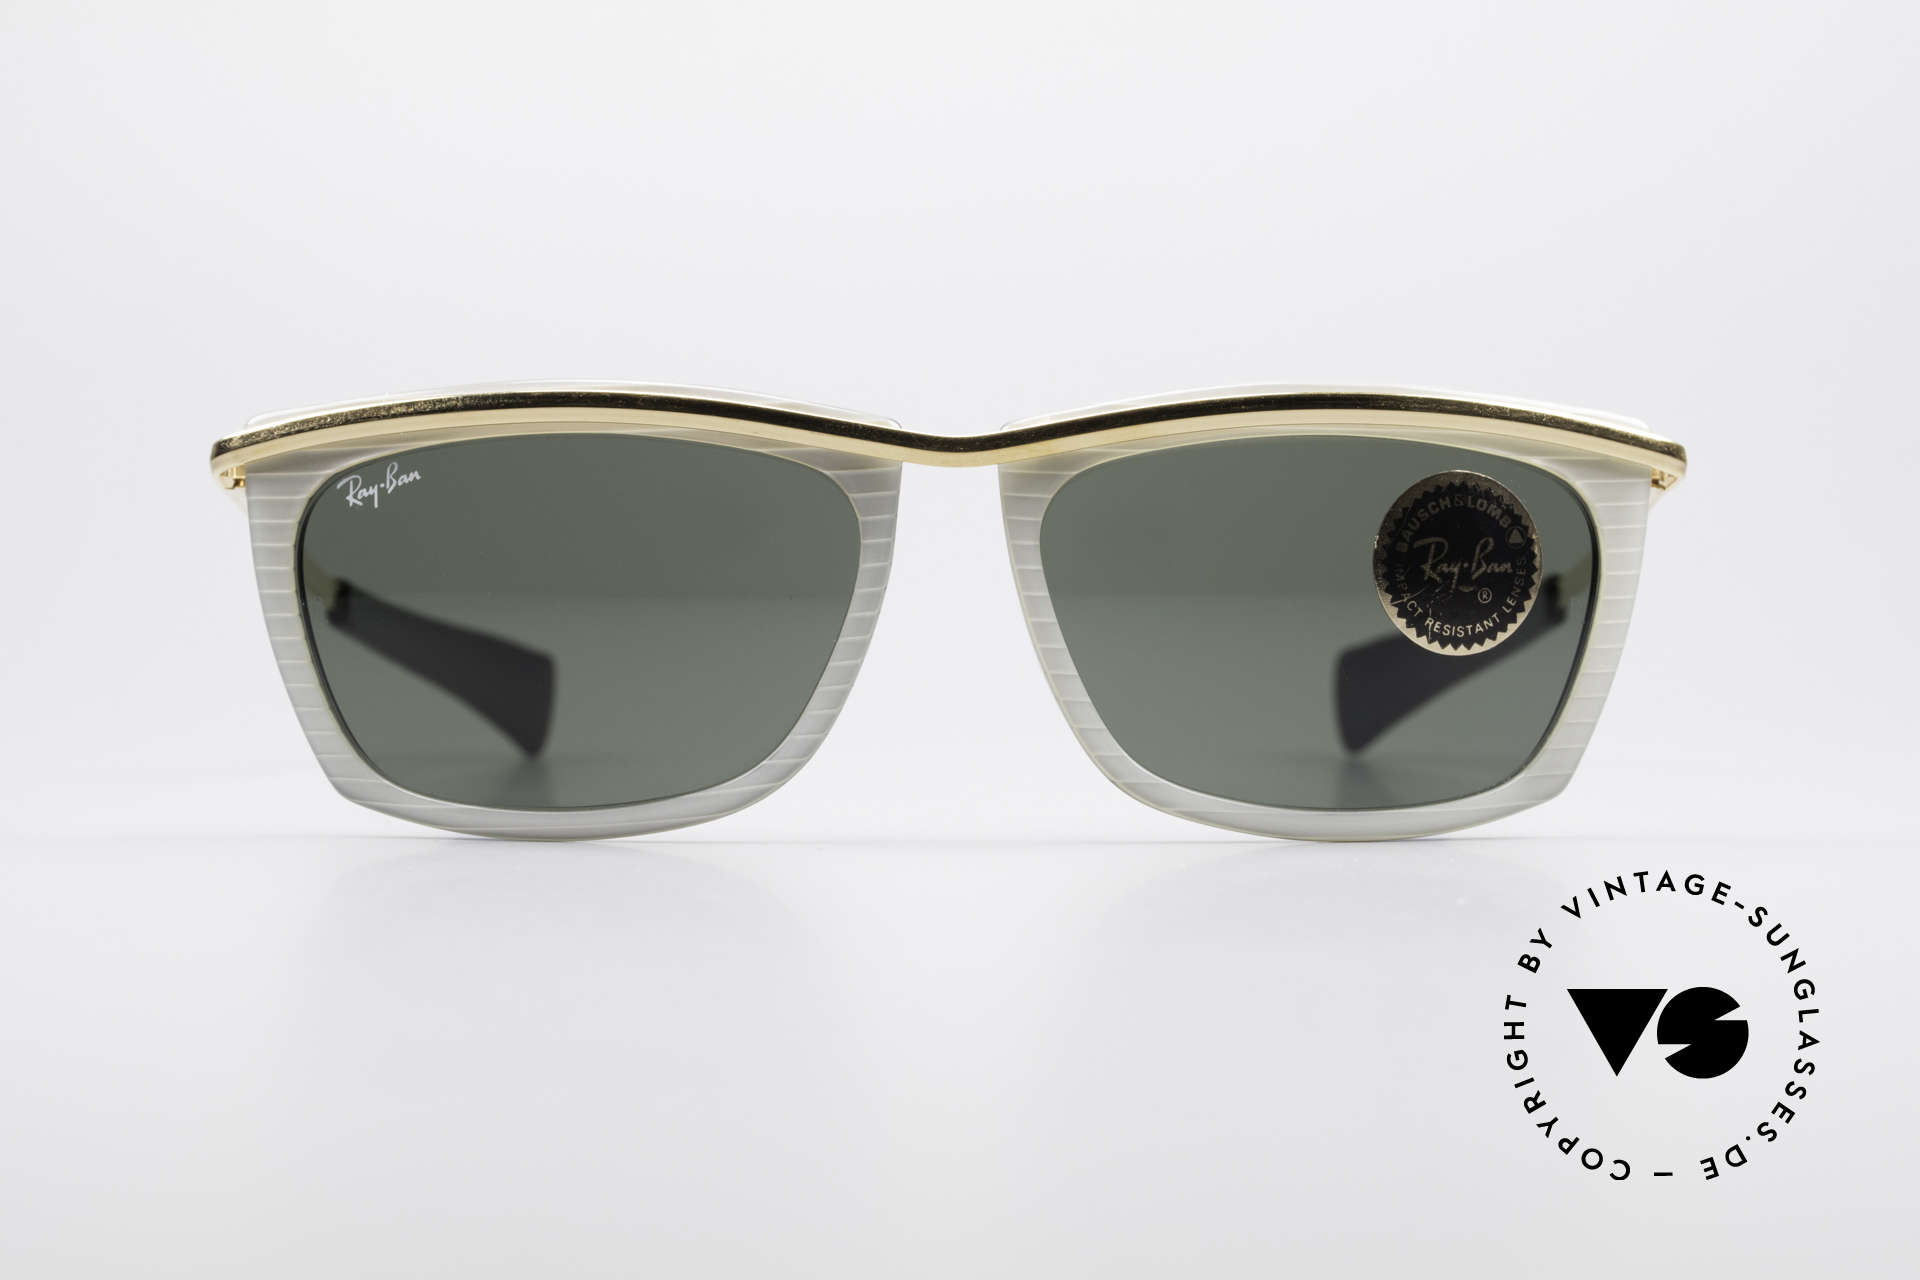 d7c76cf58ec You may also like these glasses. Ray Ban Deco Metals Carre Rare B L USA  90 s Sunglasses Details